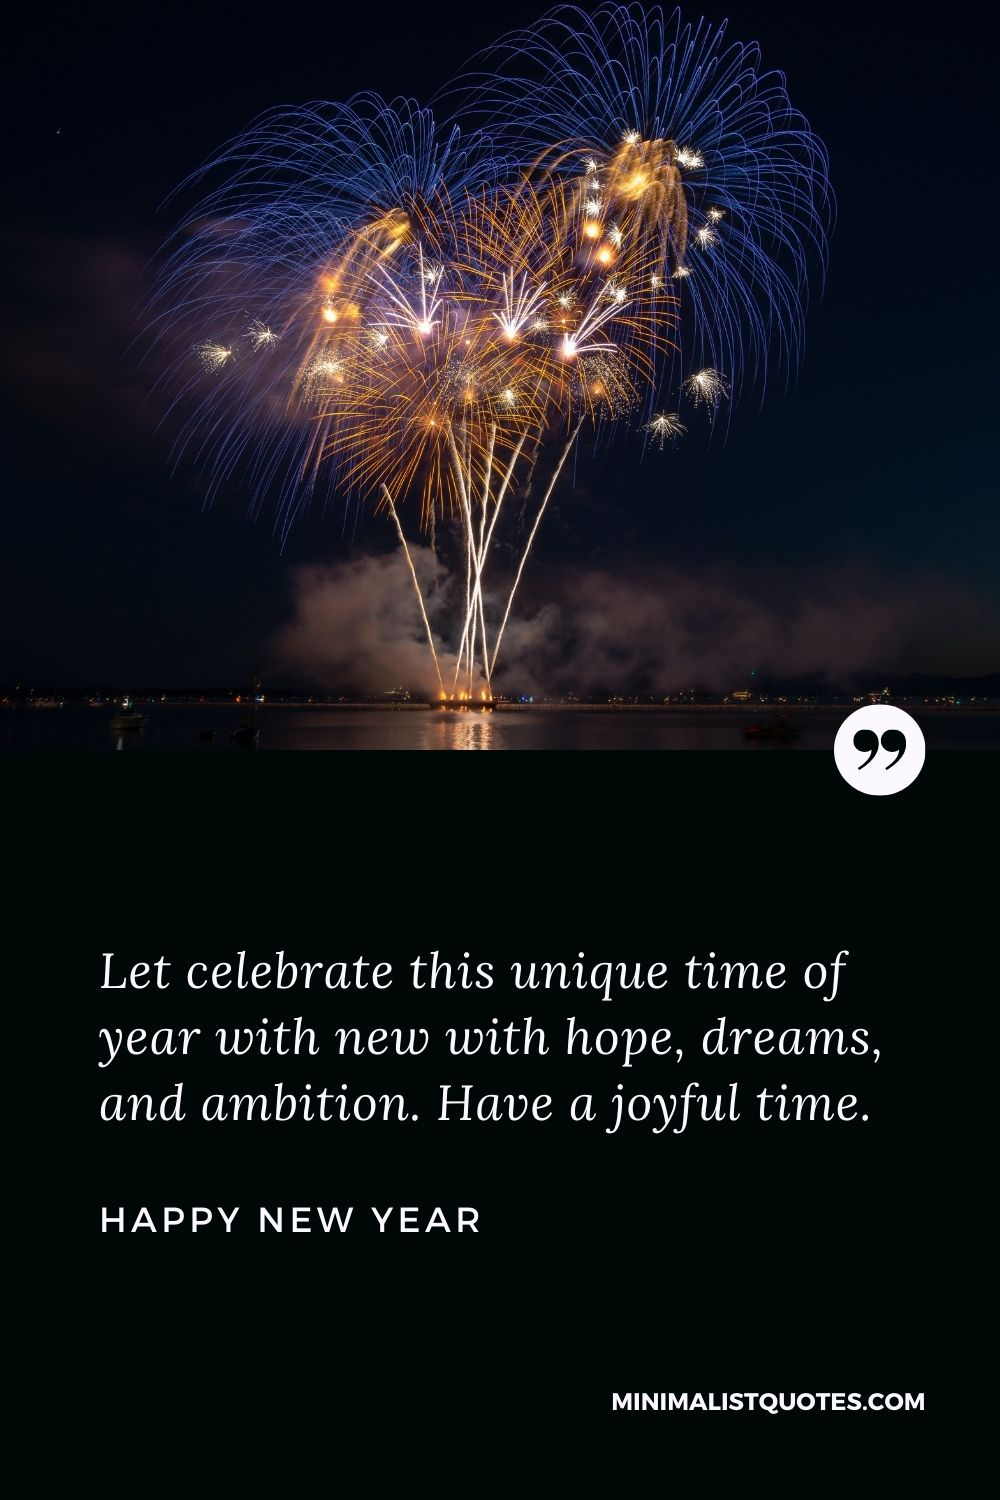 New Year Wish - I wish the coming year bring everything in life you deserve. May you have many reasons to smile.